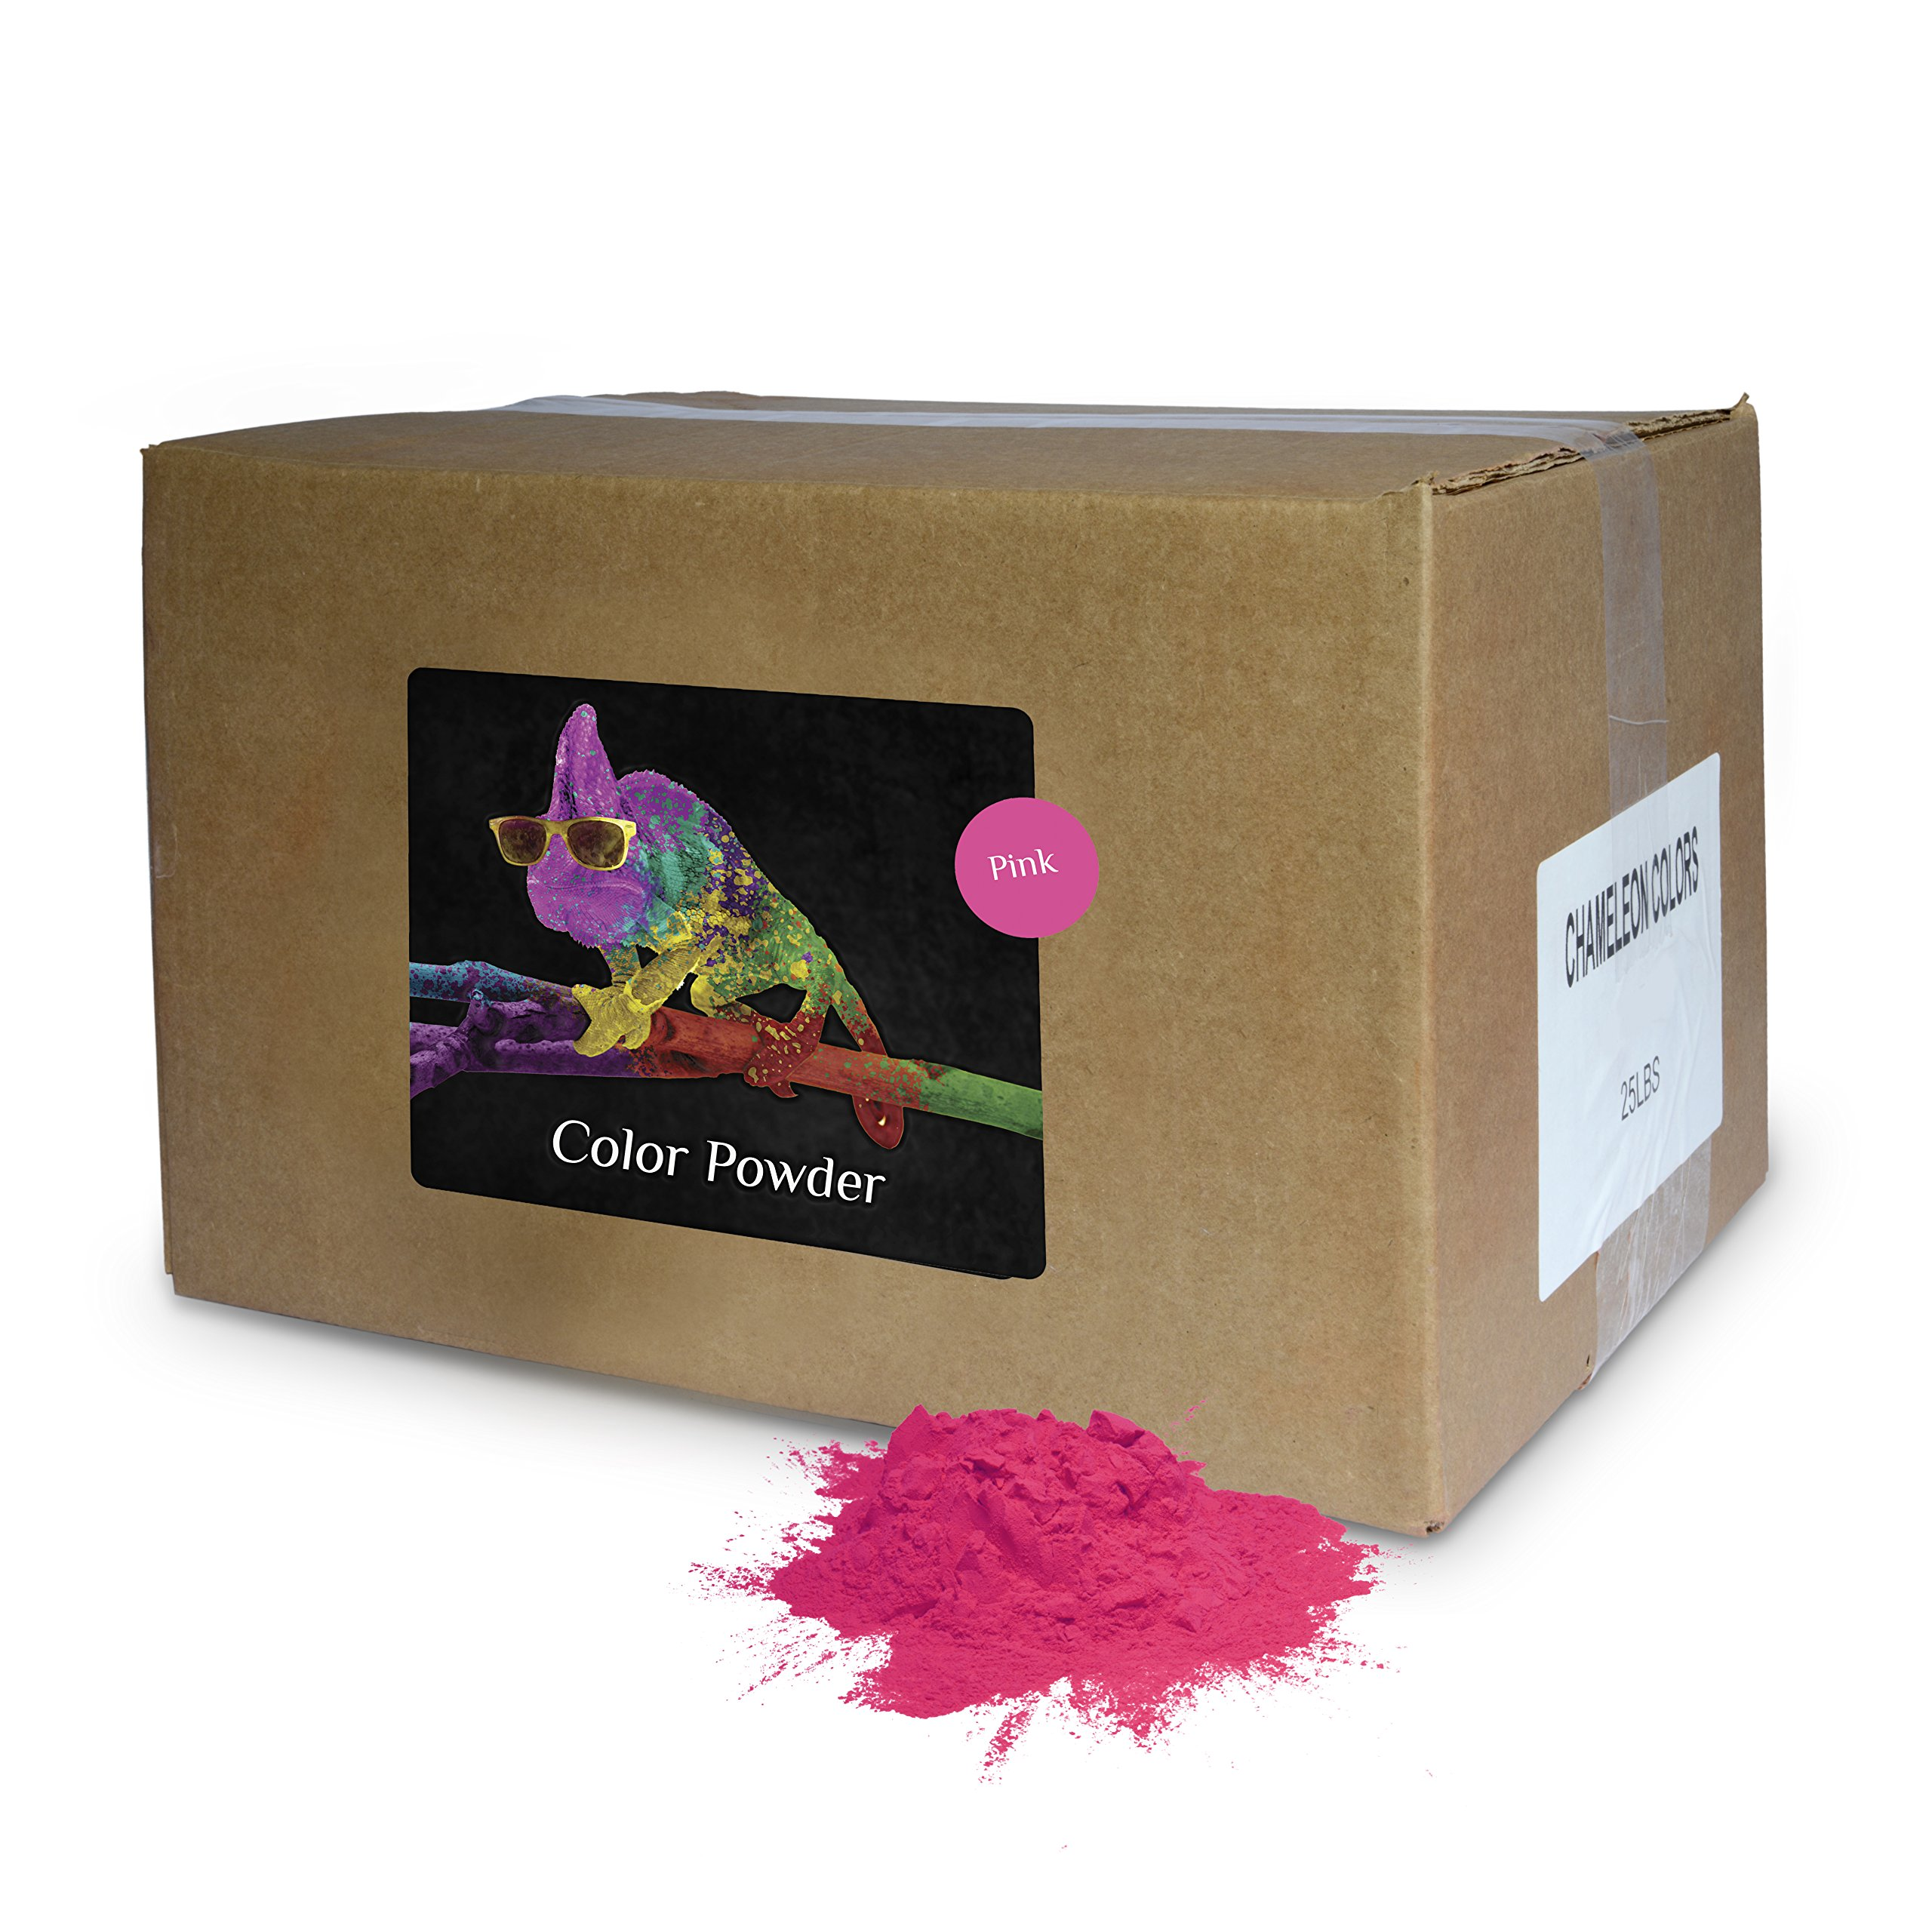 Holi Powder Bulk by Chameleon Colors - Pink - 25 lbs. Pure, Authentic - Perfect for a Color Race, 5k, Festival, Party or Any Other Event You Want to Make Colorful. by Chameleon Colors